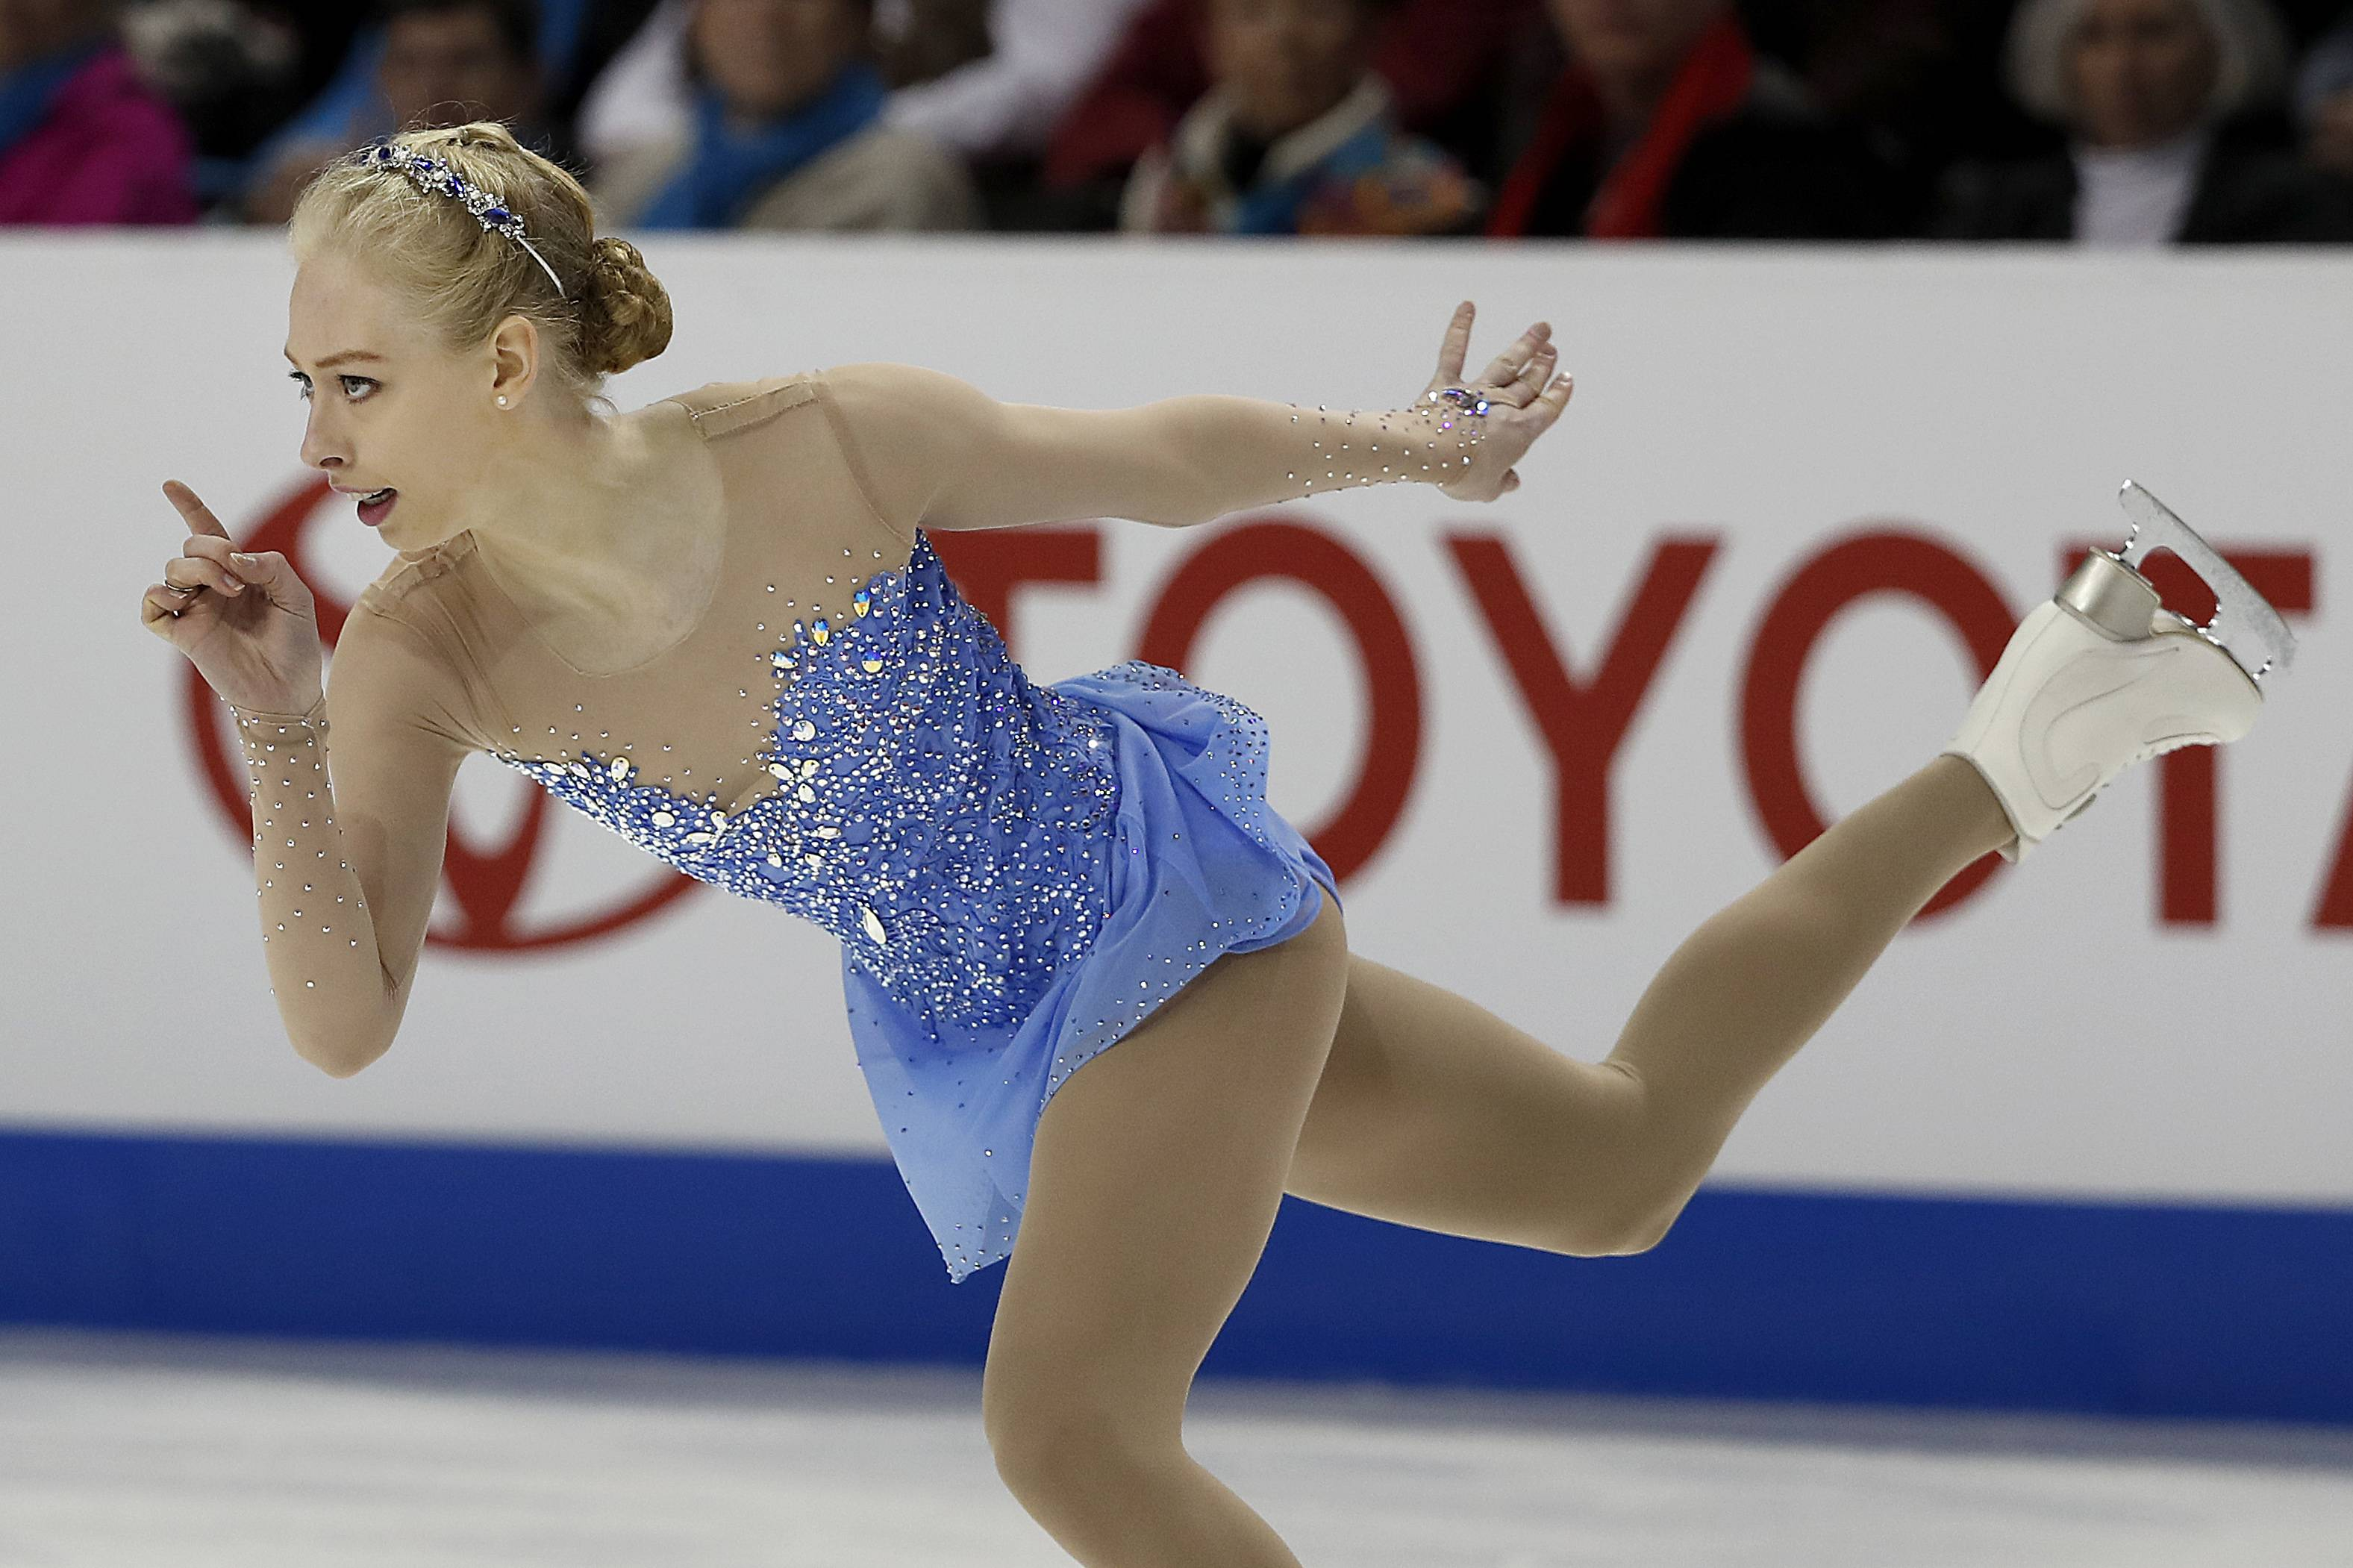 Bradie Tennell performs during the women's free skate Friday at the U.S. Figure Skating Championships in San Jose, California.